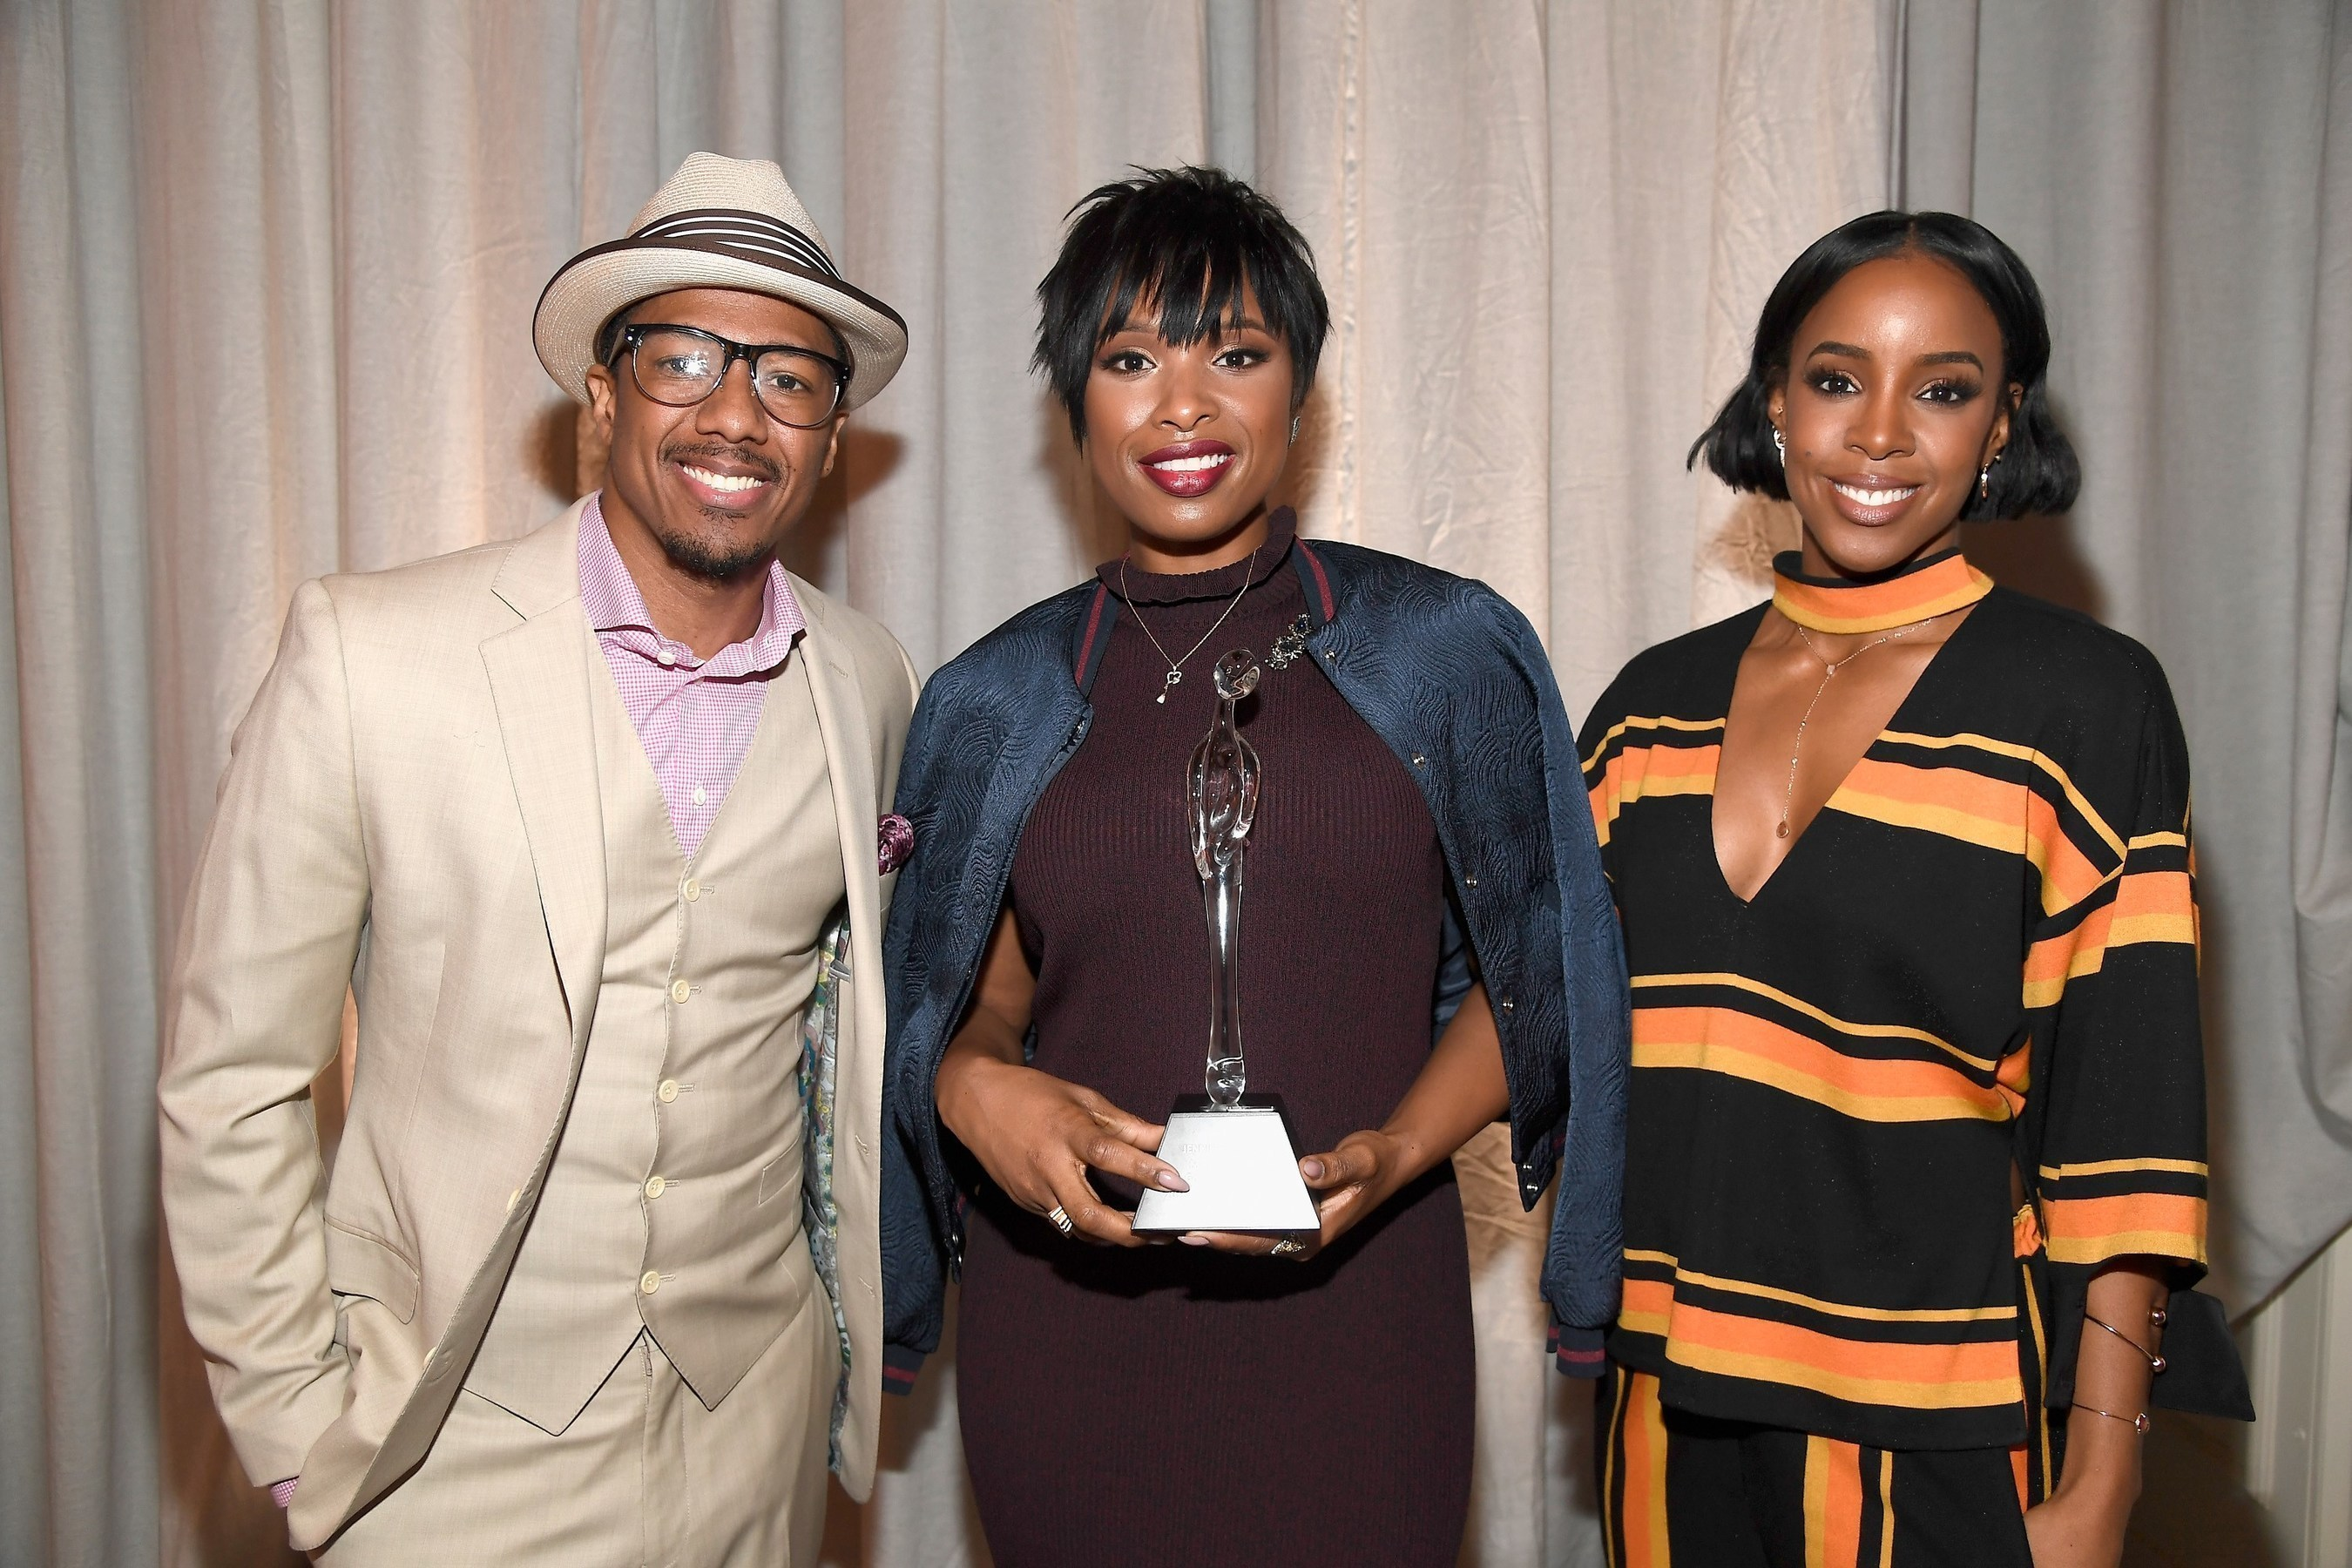 March of Dimes Raises $1.4 Million at 6th Annual Celebration of Babies': A Hollywood Luncheon